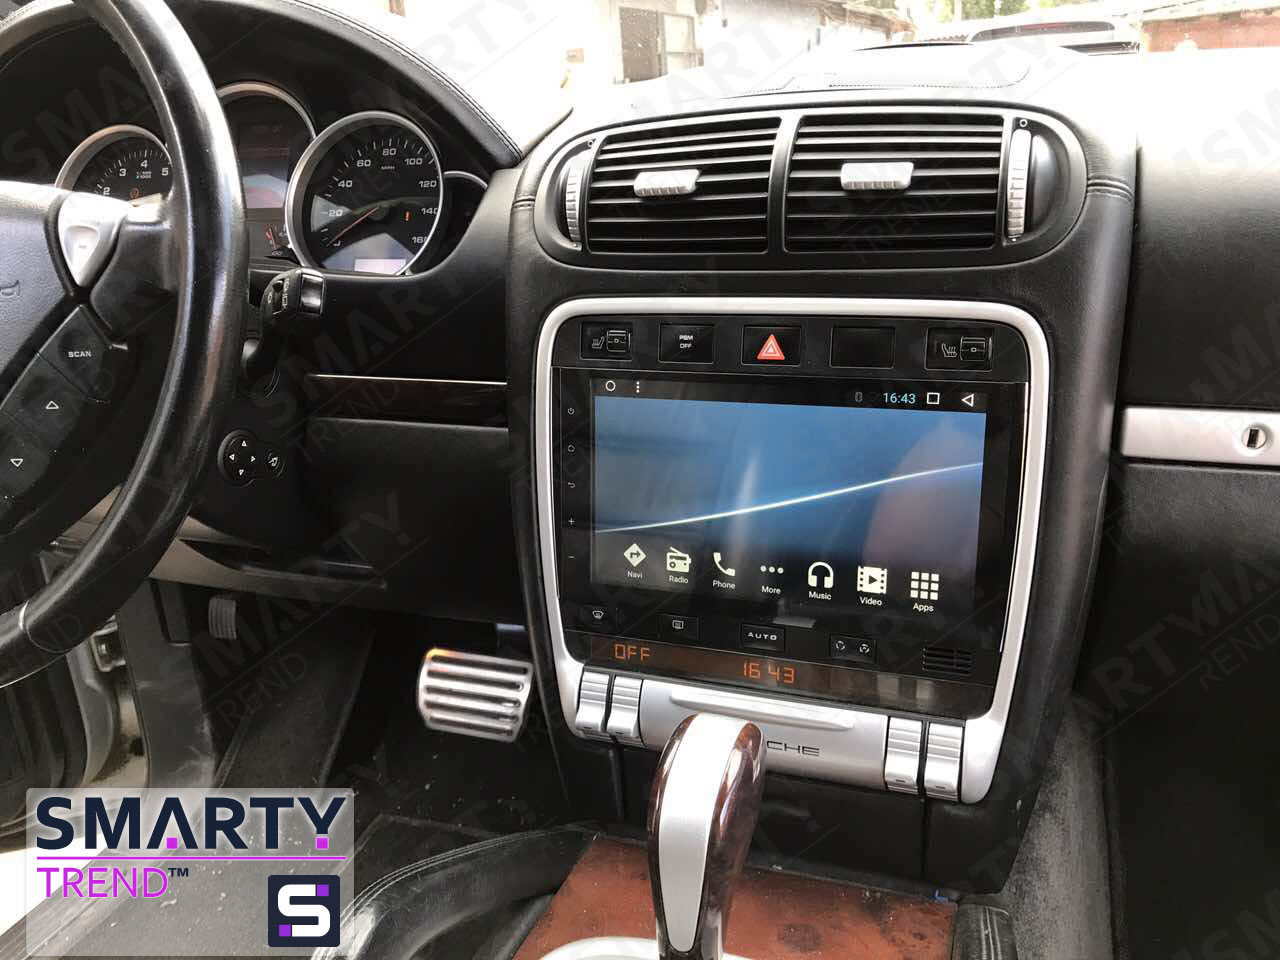 The SMARTY Trend head unit for Porsche Cayenne.